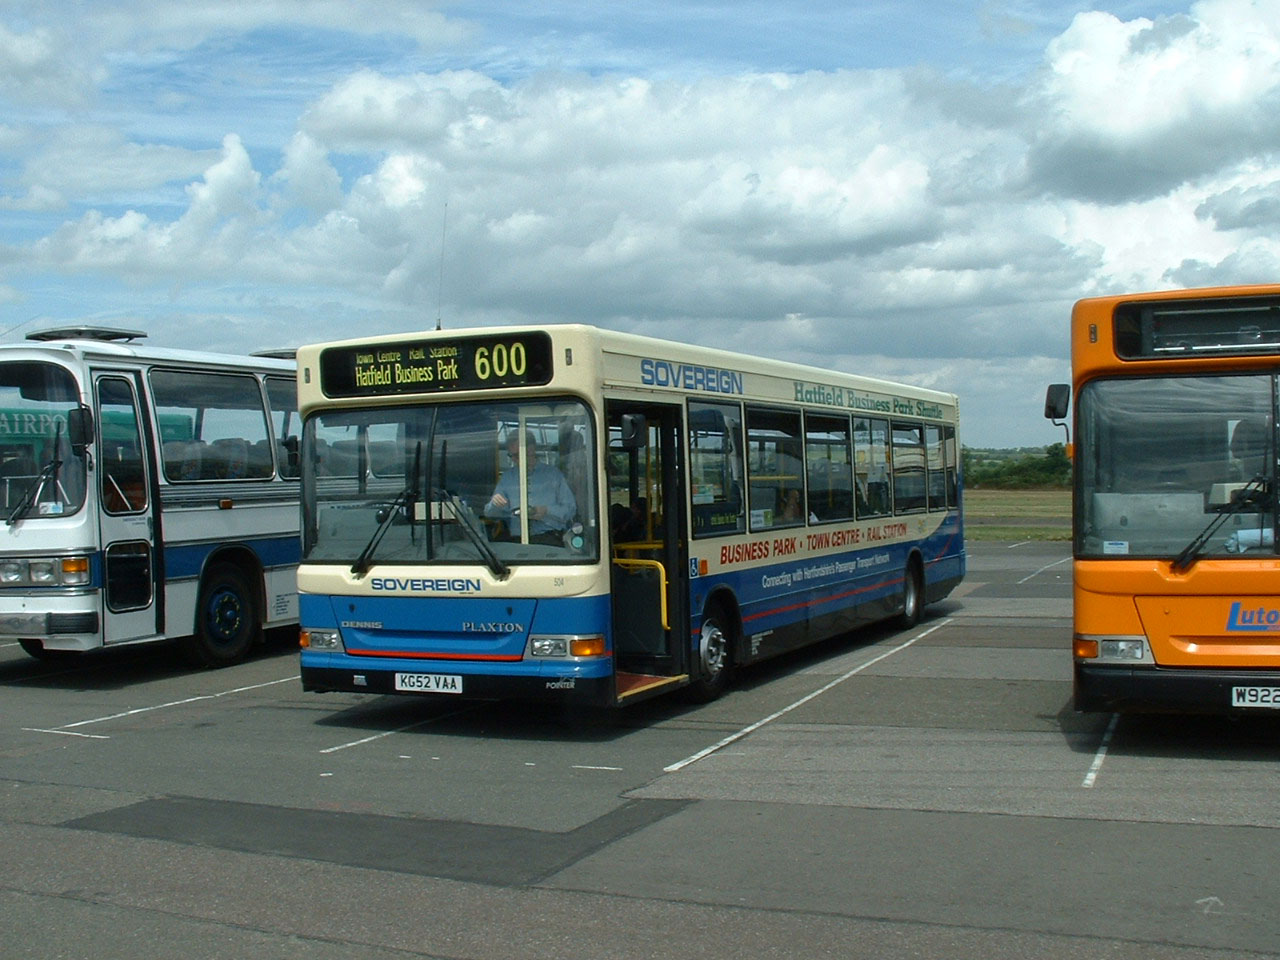 Sovereign Dennis Dart SLF Plaxton Pointer 2